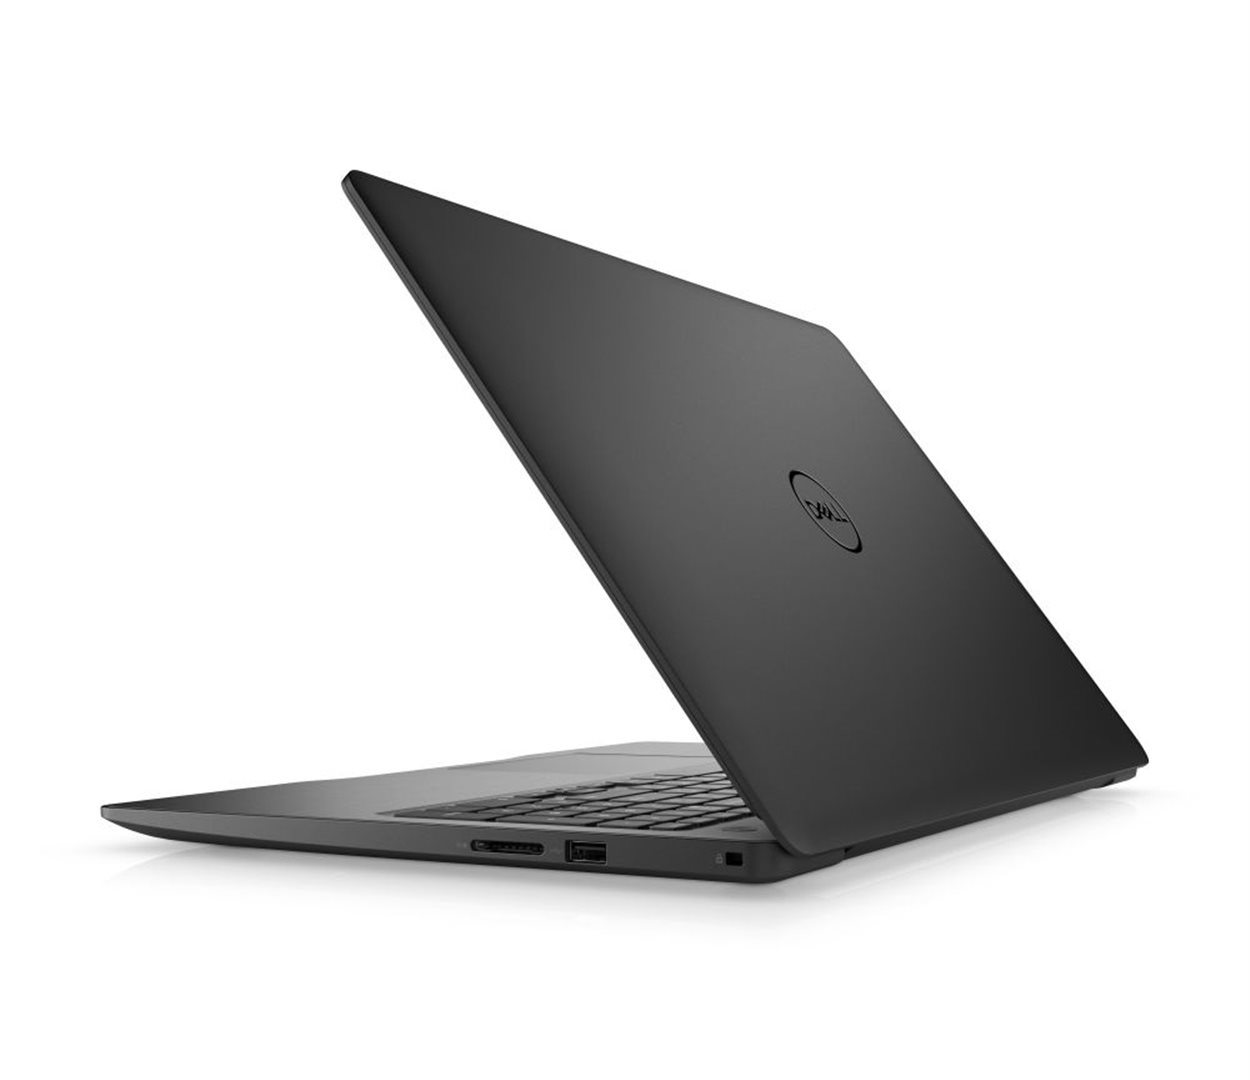 Dell Inspiron 15 5000 5570 Stbrn 3 additionally 275887 Changing Wel e Login Screen Background Back Default also F 120060202 Pl4856 together with 79250 Notebook Laptop 156 Dell Inspiron 5520 I7 3612qm 8gb 1000 Dvd Rw moreover 323928 All In One Dell Inspiron 7459 I7 6700hq 16gb 200032 10pro Fhd. on dell system inspiron 530